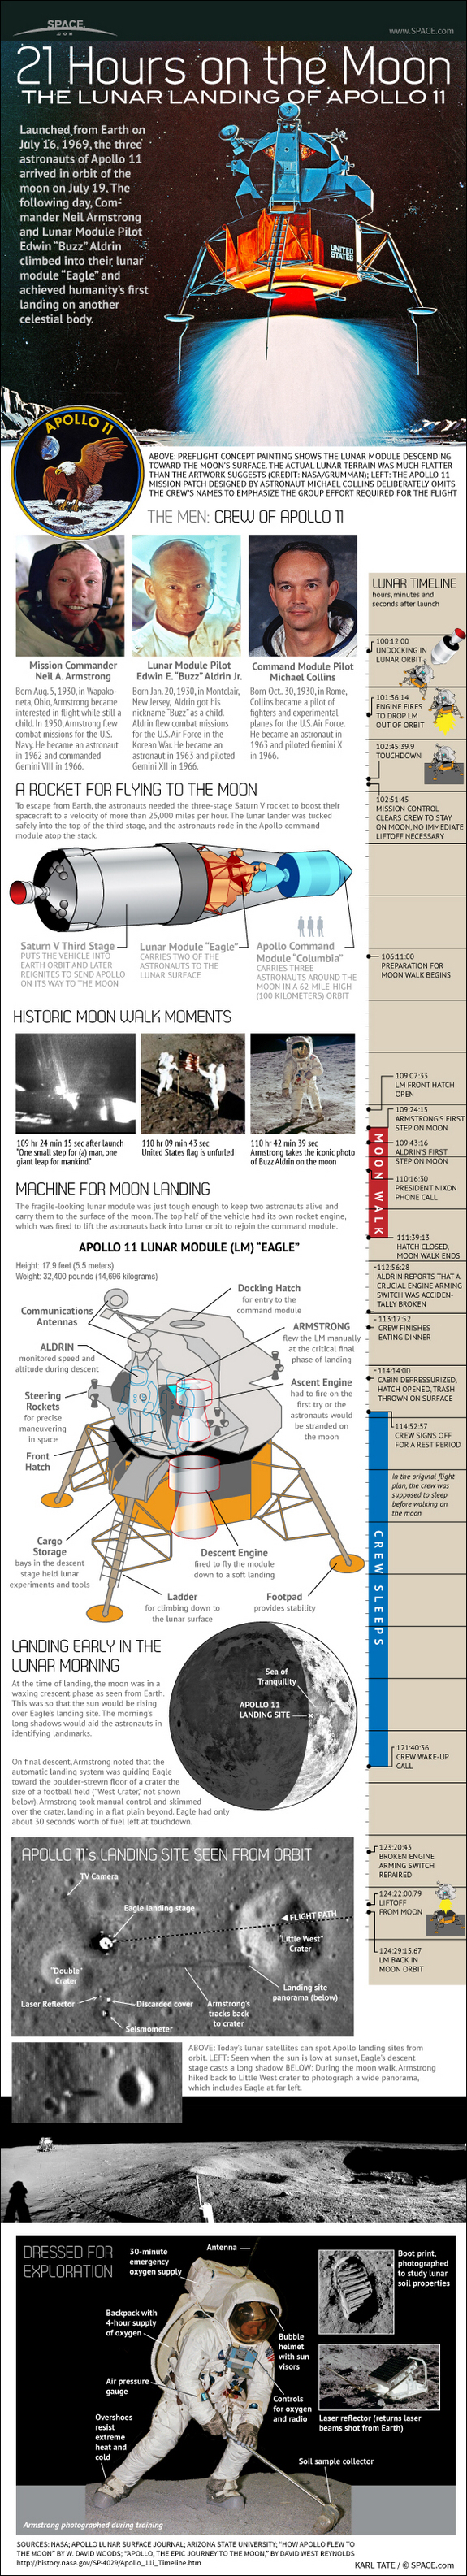 Apollo 11 at a glance